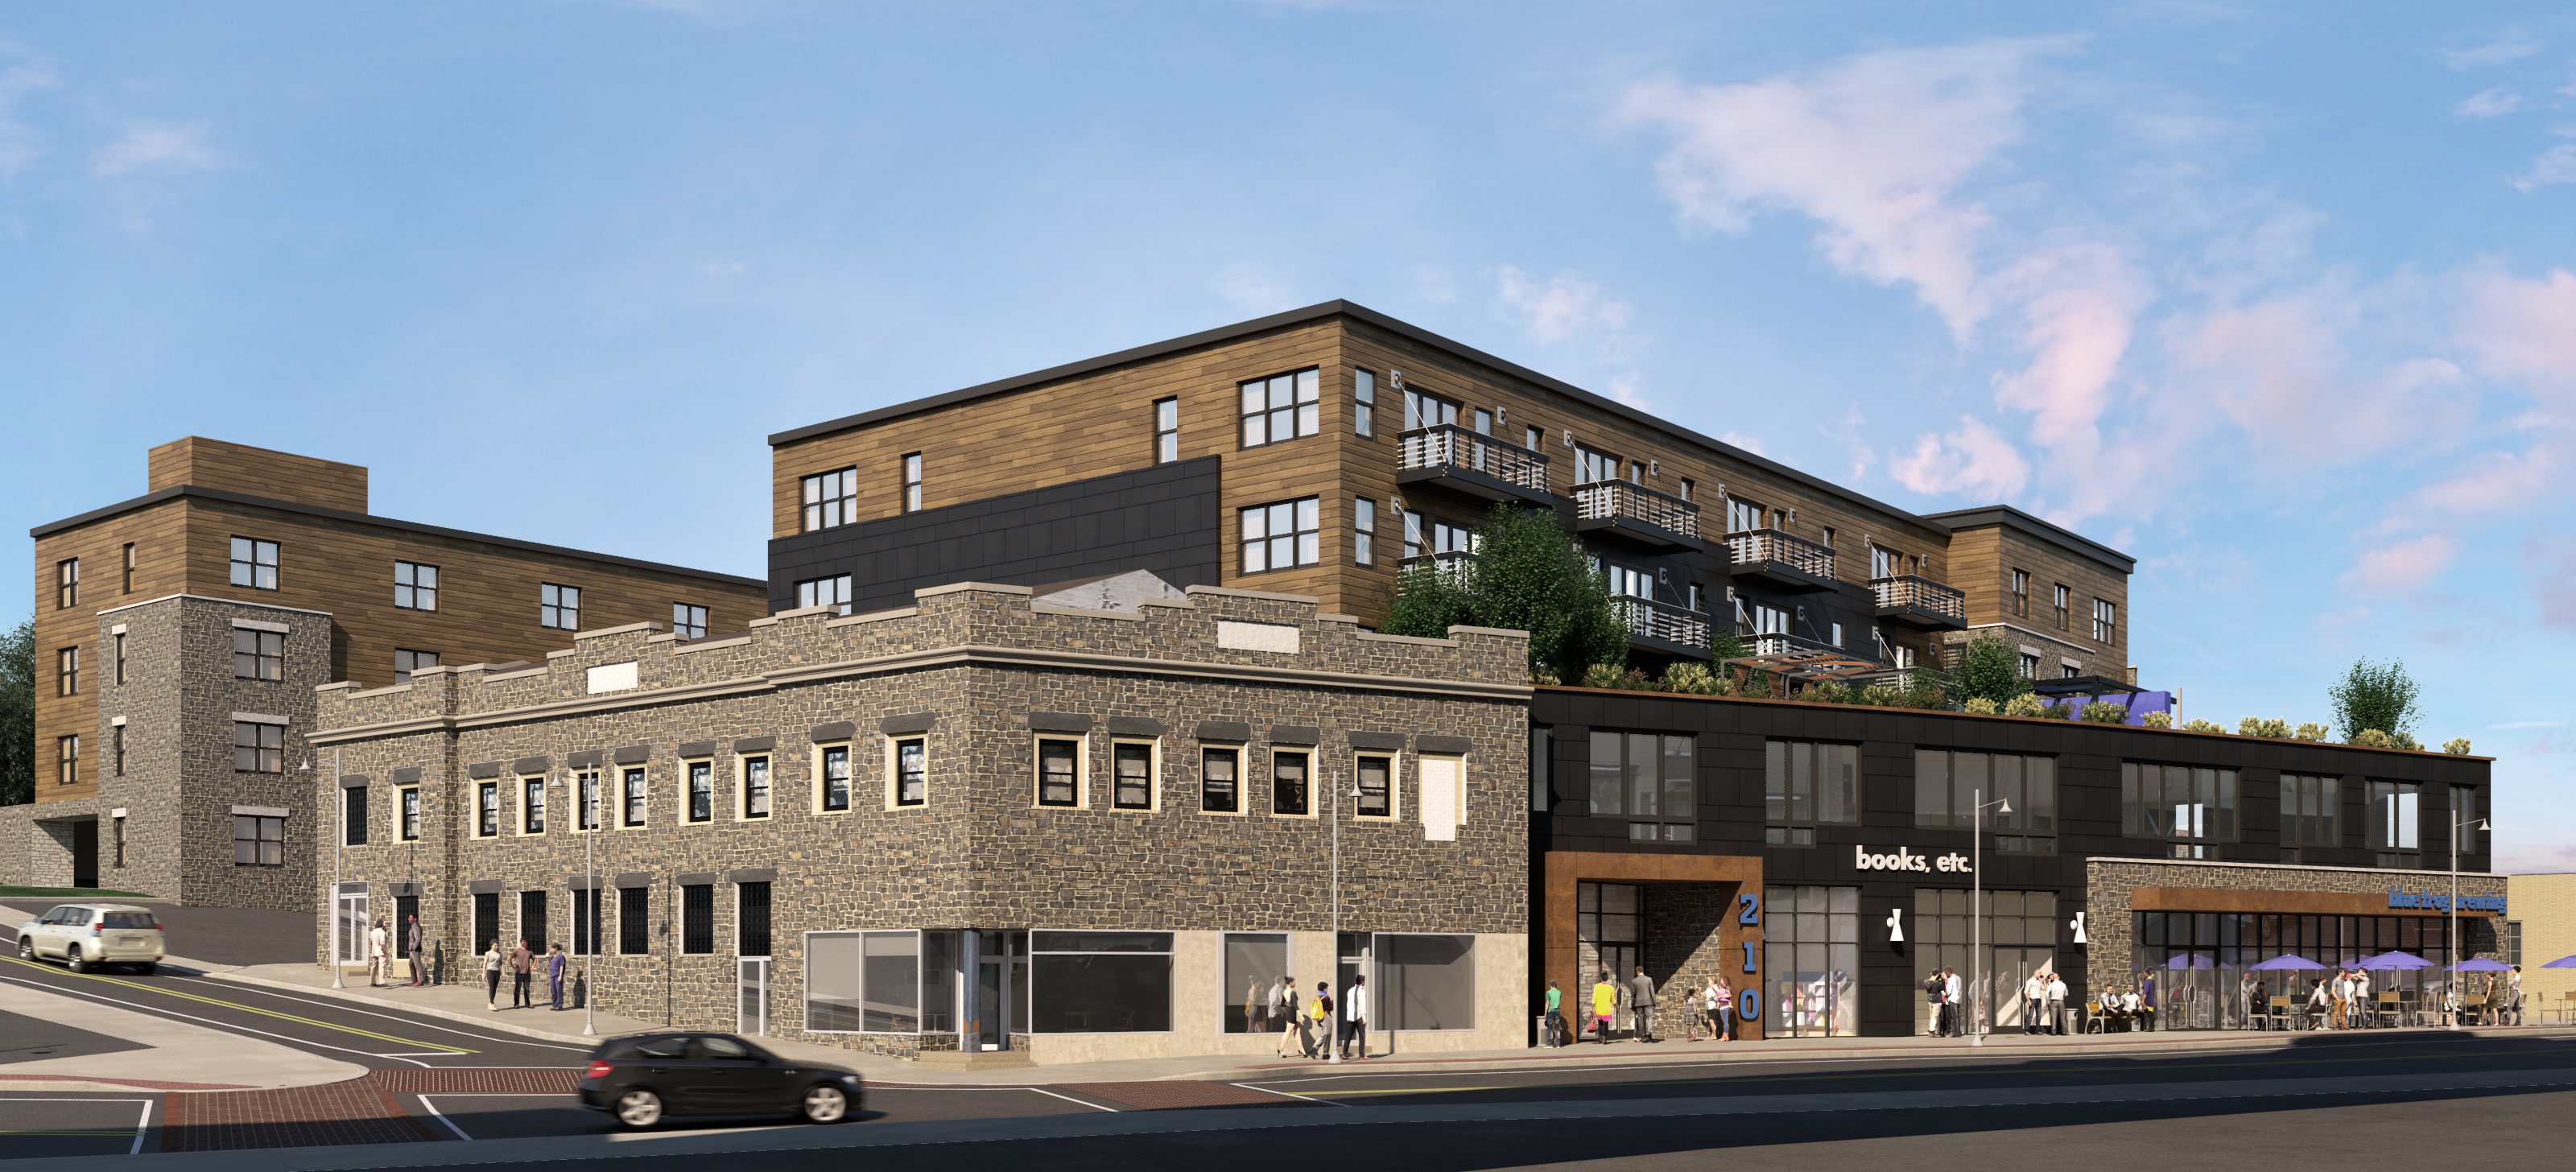 Bernardon New Mixed Use Building Proposed For Bala Cynwyd